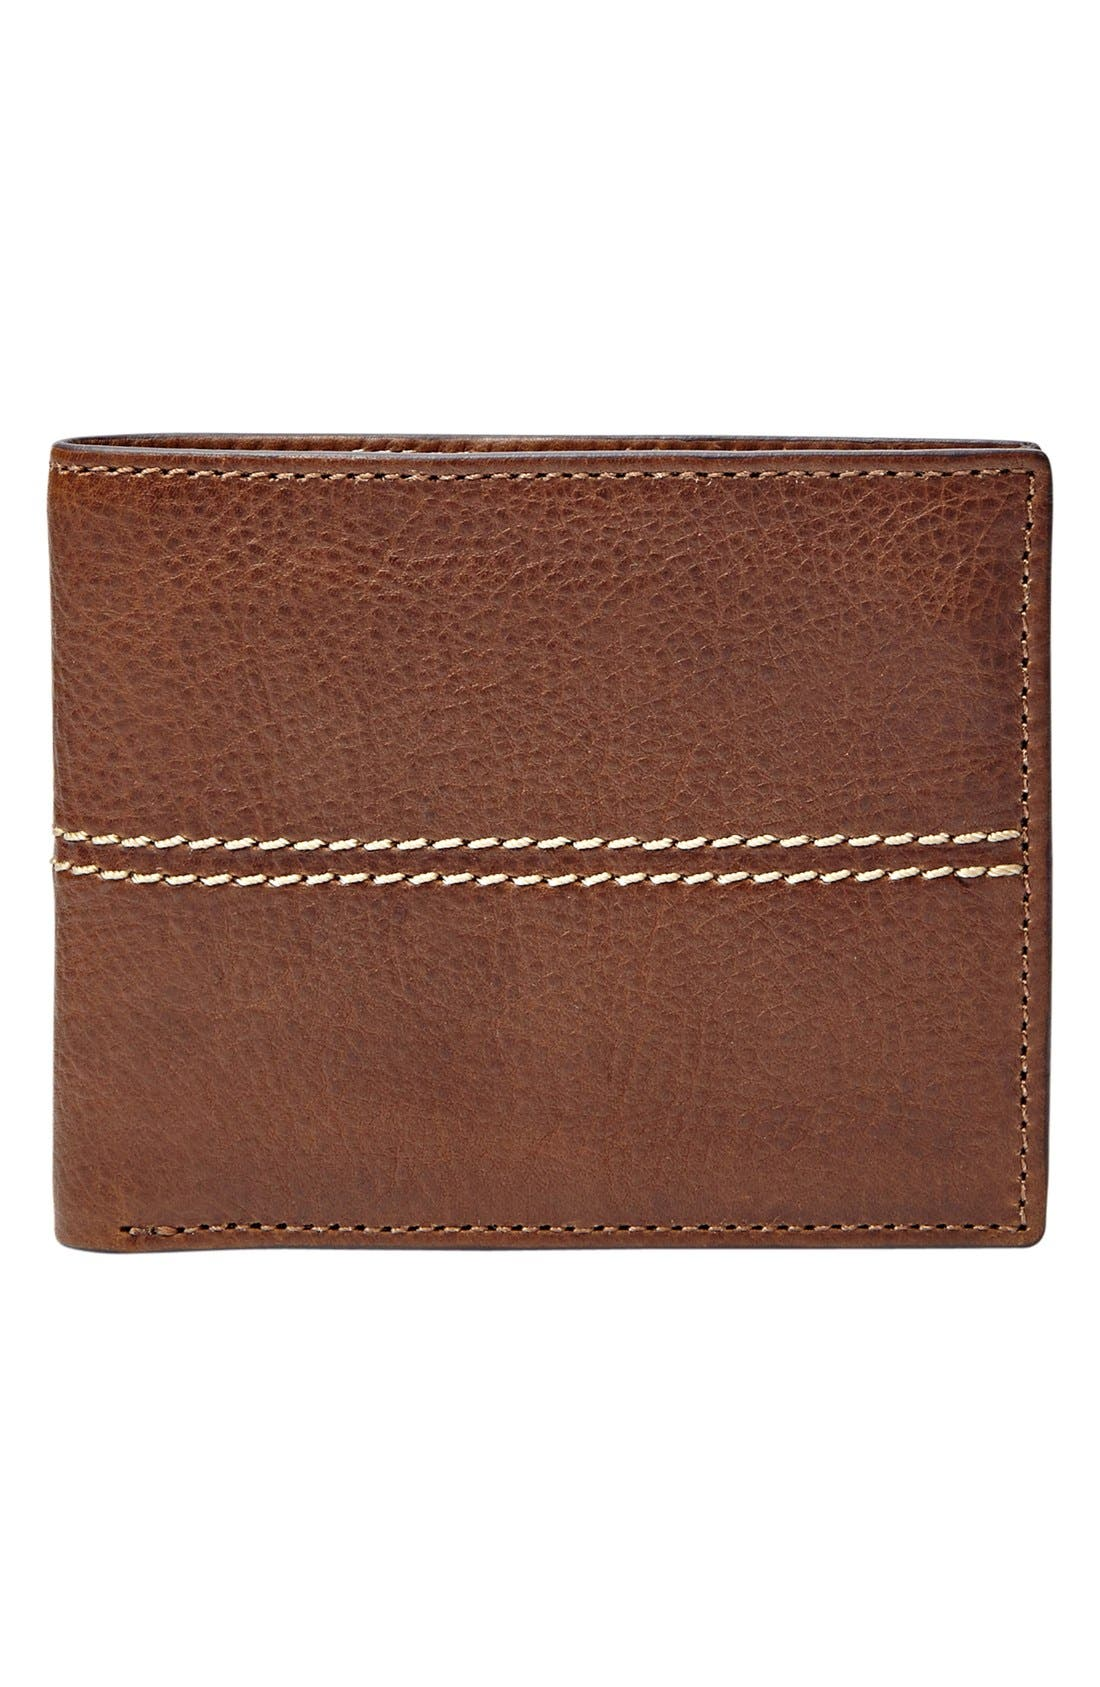 'Turk' Leather RFID Wallet,                             Main thumbnail 1, color,                             Brown